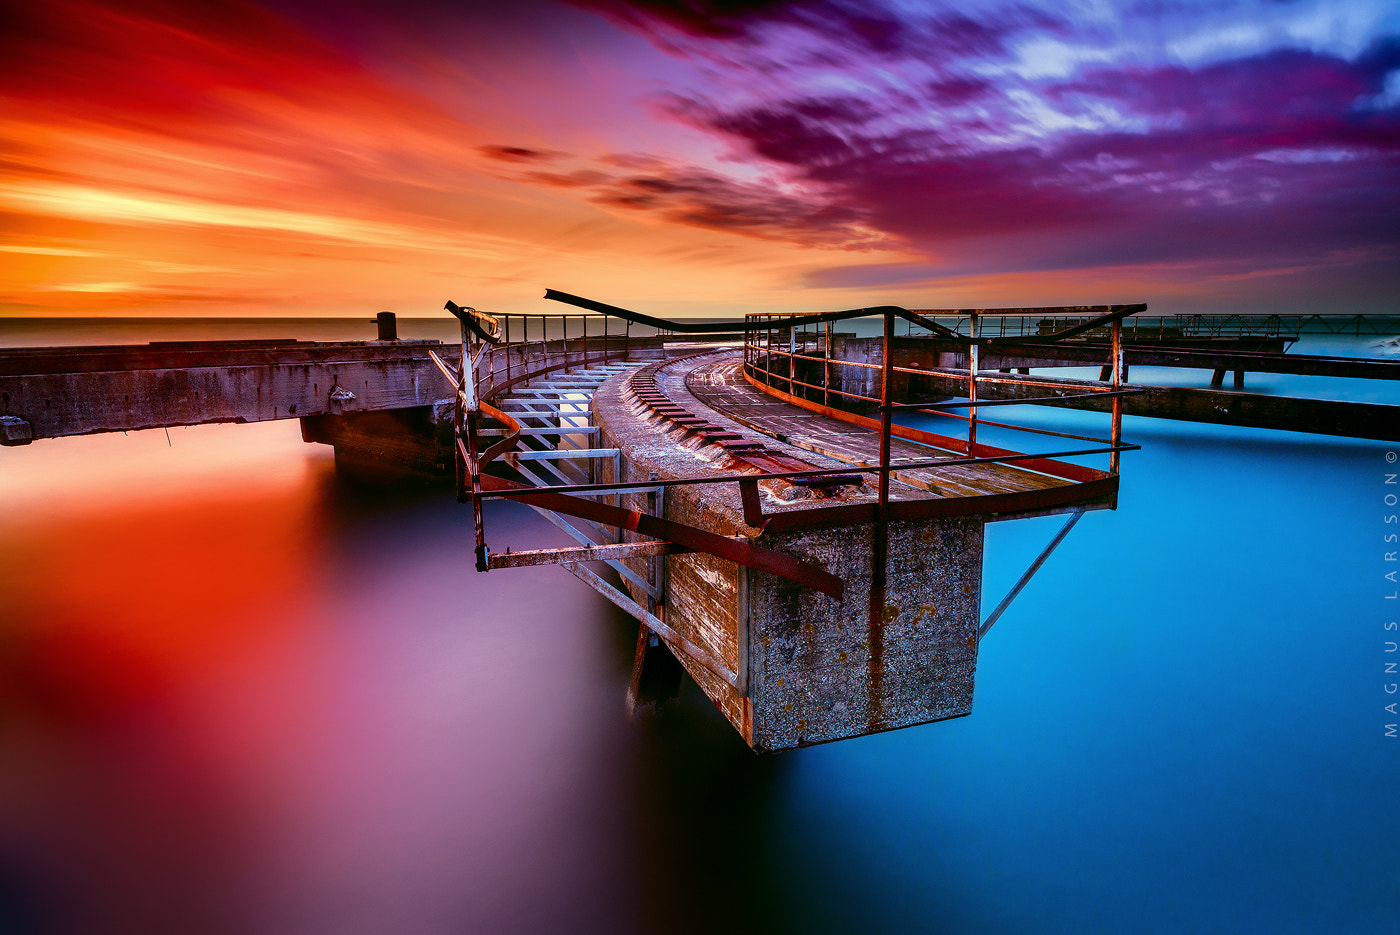 Photograph Concrete stuff in the water. by Magnus Larsson on 500px